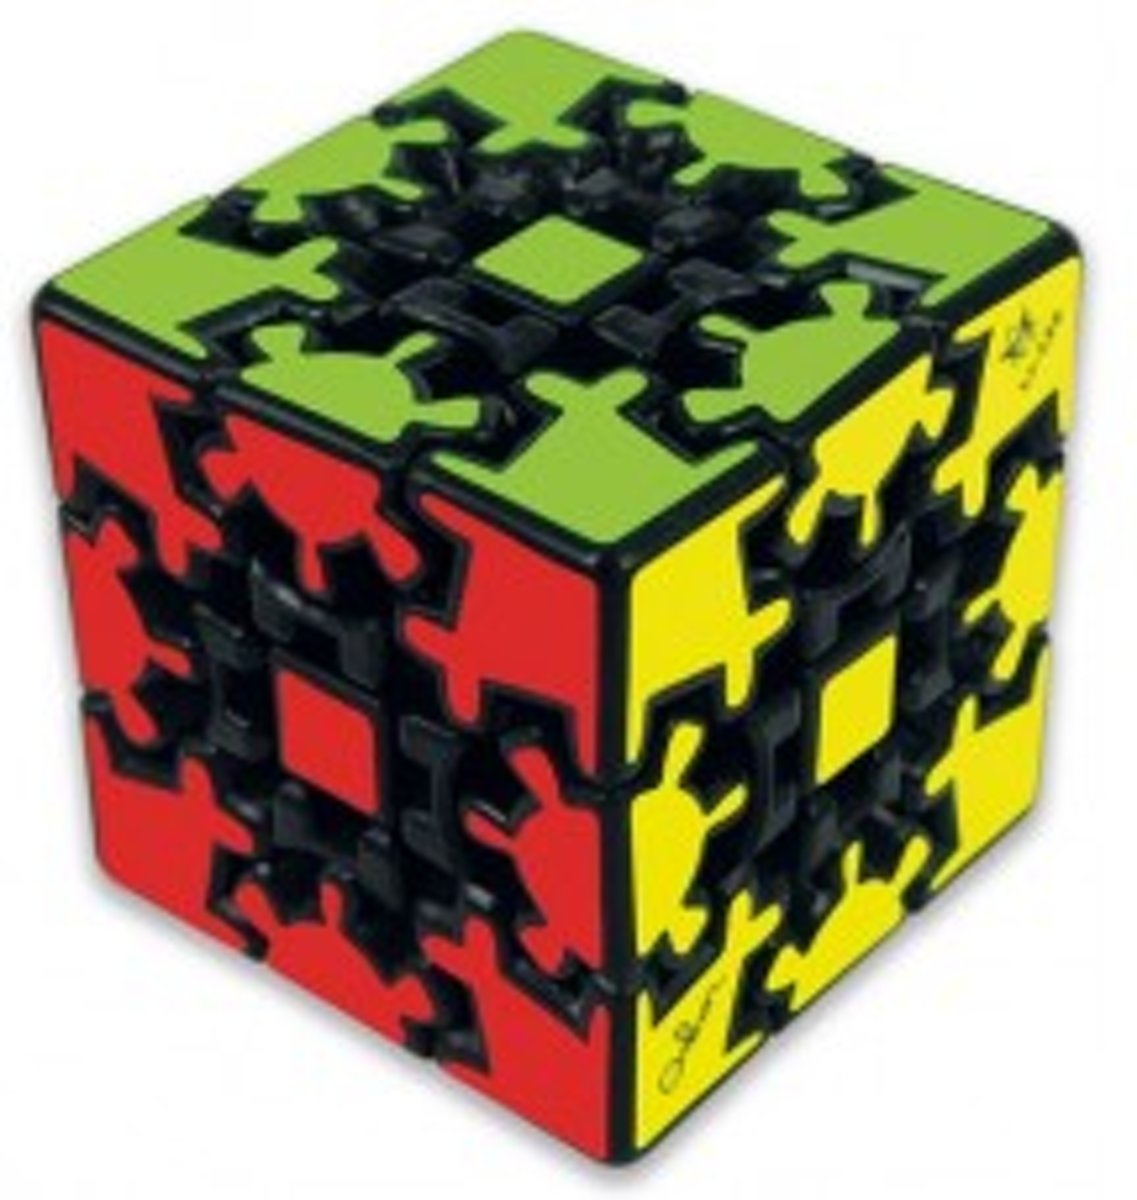 Gear Cube, brainpuzzel, Recent Toy